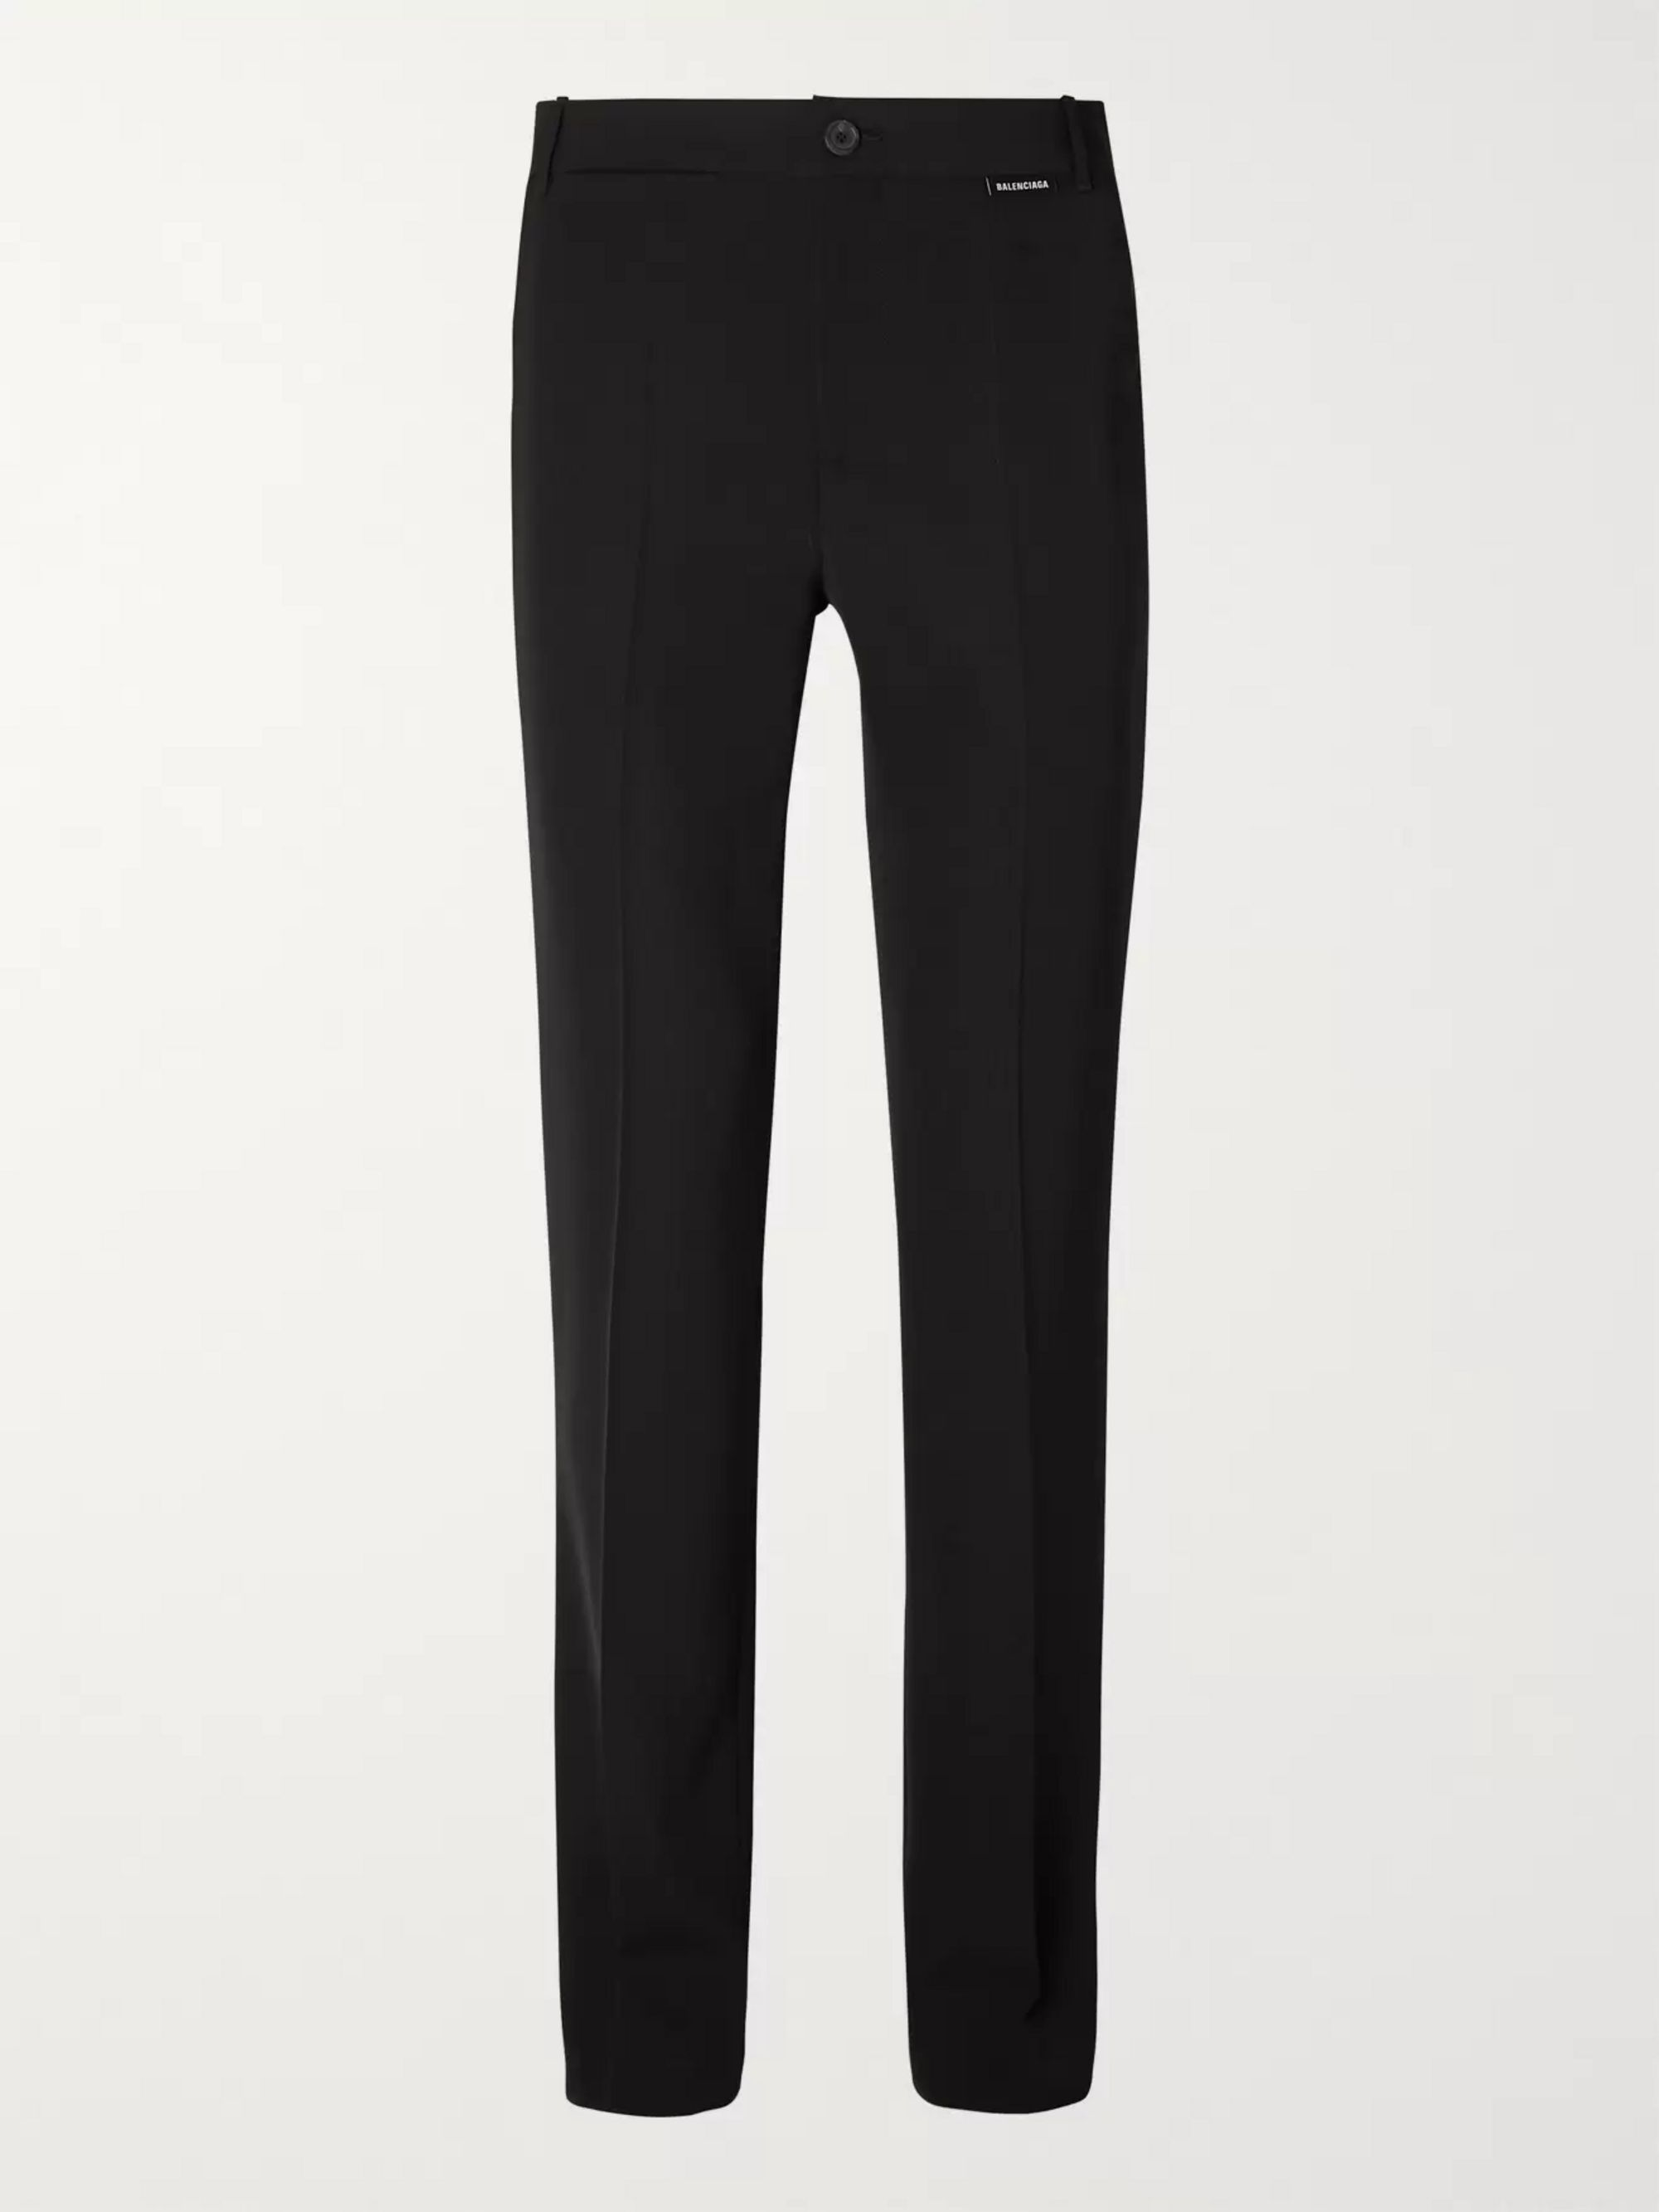 Balenciaga Black Twill Suit Trousers